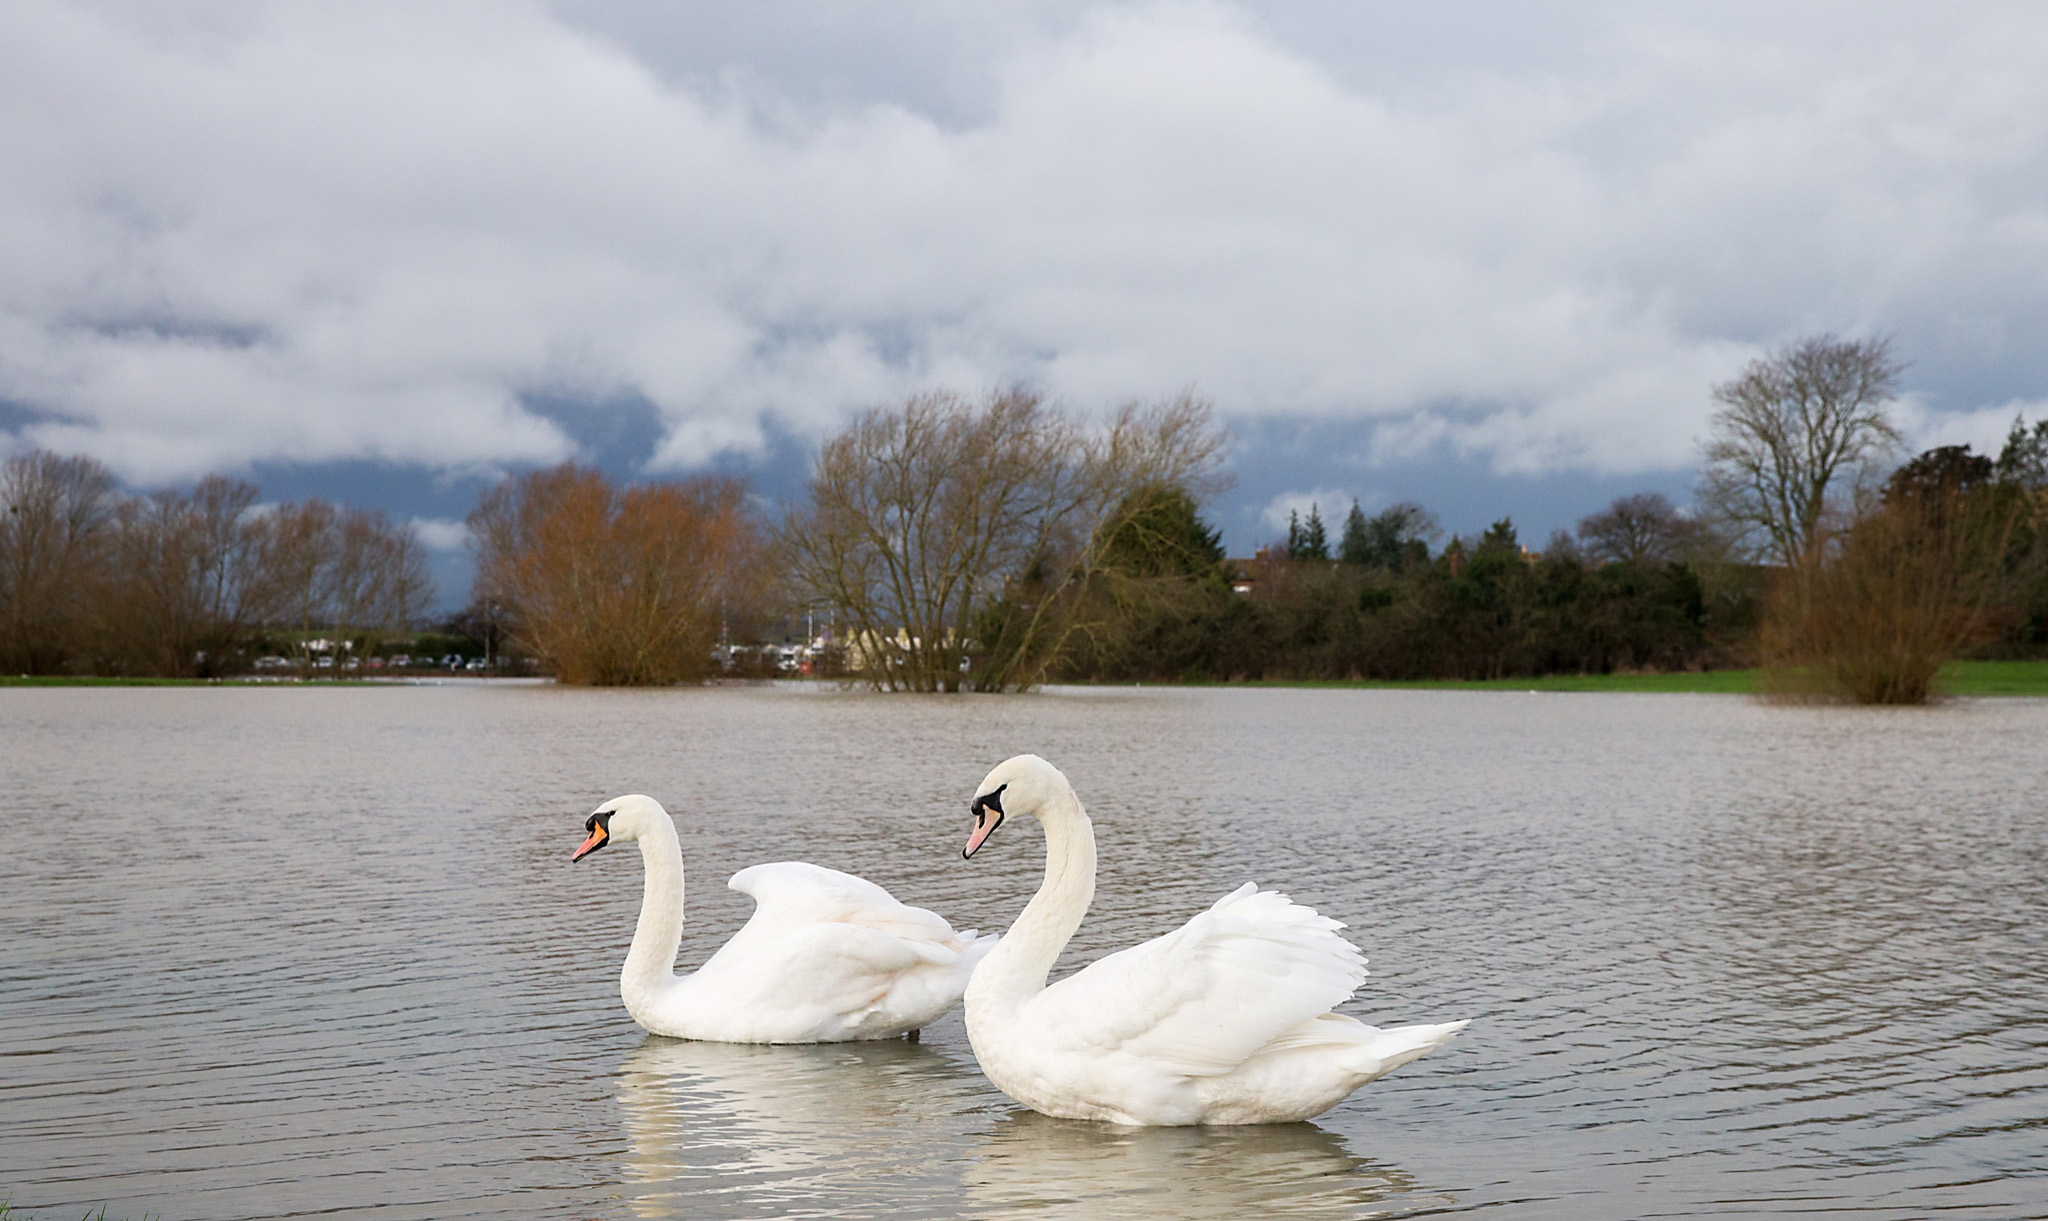 Storm Gertrude Brings More Weather Alerts To The UK...TEWKESBURY, UNITED KINGDOM - JANUARY 04:  Swans swim on flood waters sitting around Tewkesbury Abbey after weeks of heavy rain on January 4, 2016 in Tewkesbury, England. Storm Gertrude is the latest winter storm to bring heavy rain fall and the threat of more flooding to the UK as well as causing widespread disruption to transport and infrastructure.  (Photo by Matt Cardy/Getty Images)